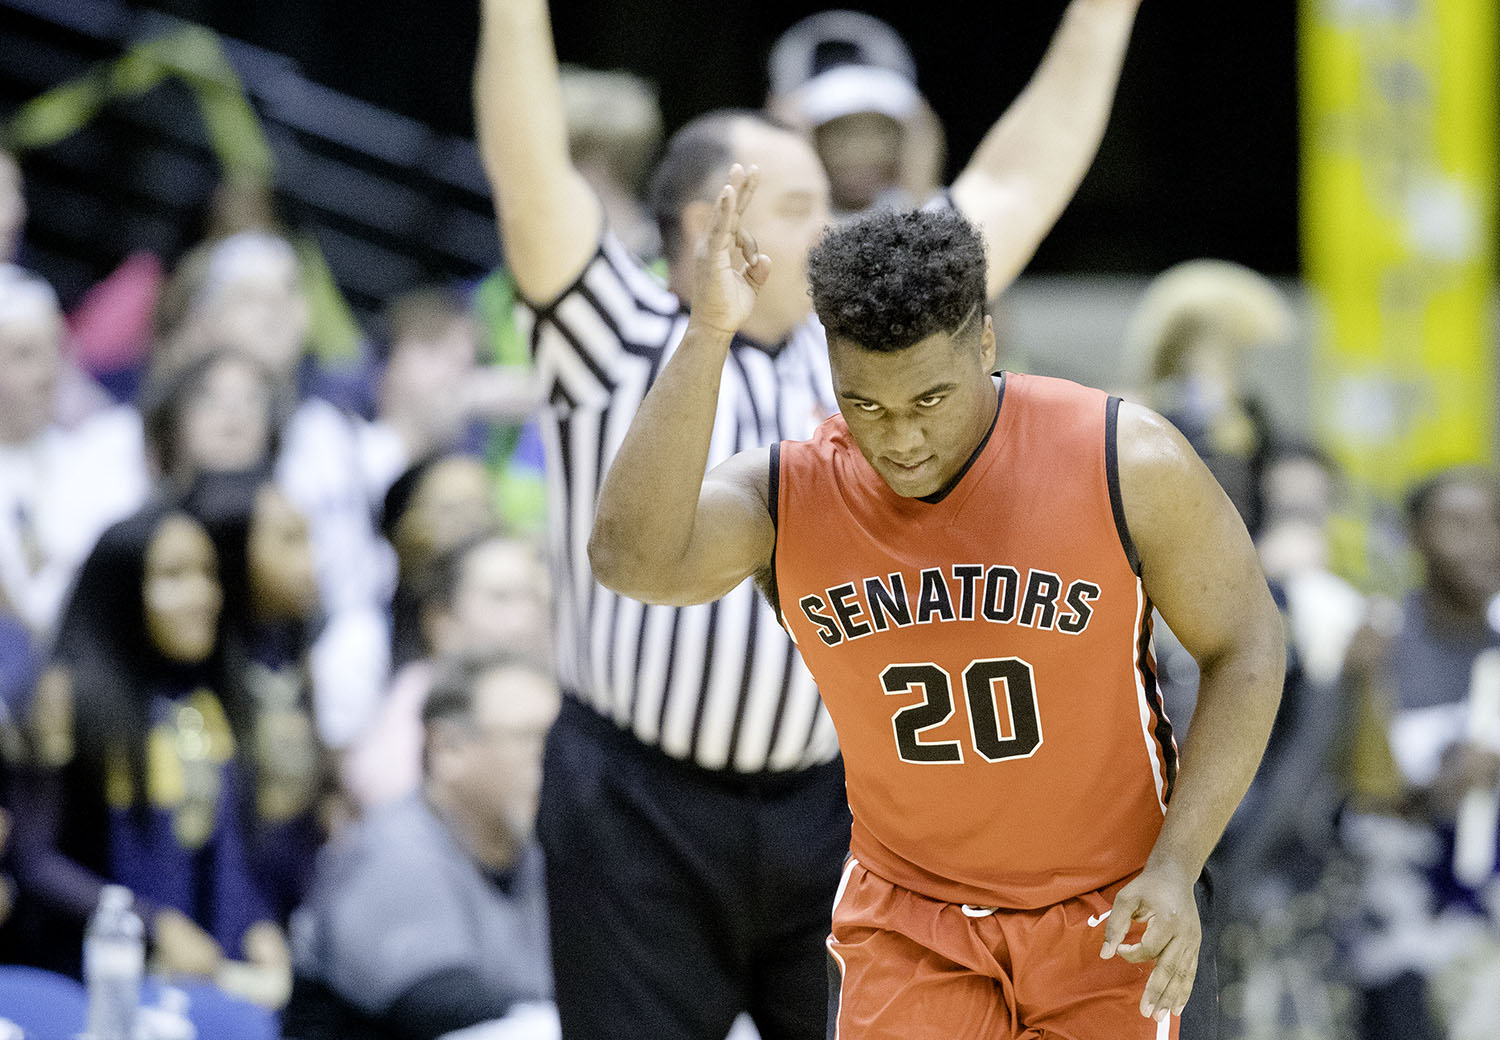 Springfield's Caleb Small celebrates a trey against Southeast during the Boys City Tournament at the Bank of Springfield Center Thursday, Jan. 17, 2019.  [Ted Schurter/The State Journal-Register]